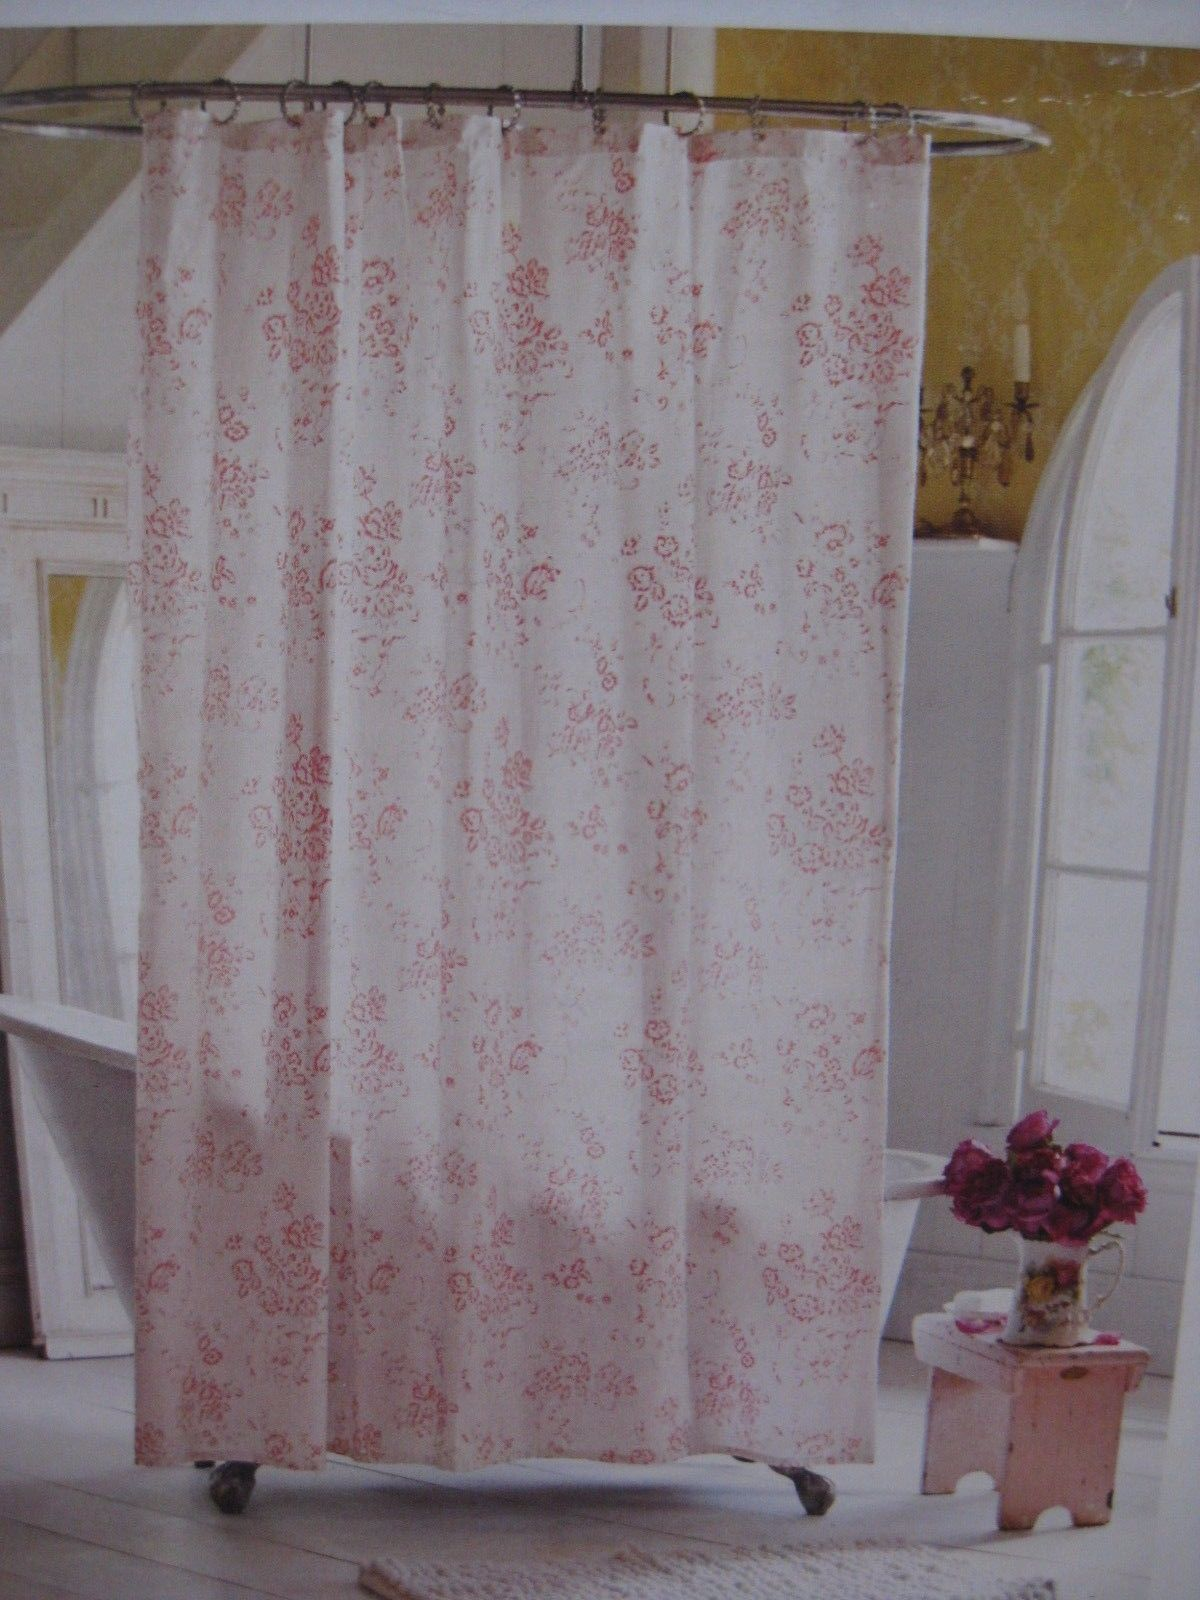 curtain for sizing regard curtains vintage design rod x trailer to shower with travel